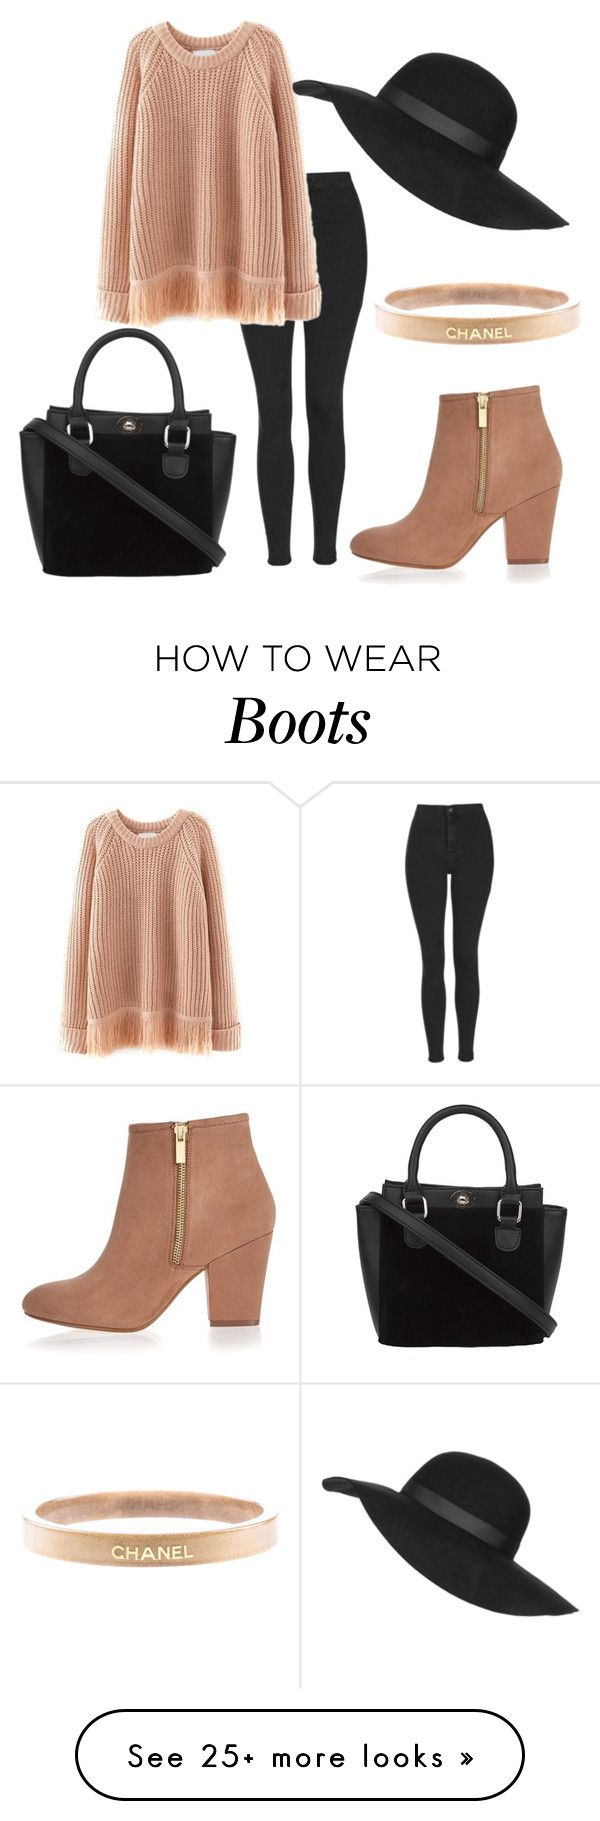 """"""":)"""" by heart235 on Polyvore featuring Topshop, River Island, Chanel, women's…"""